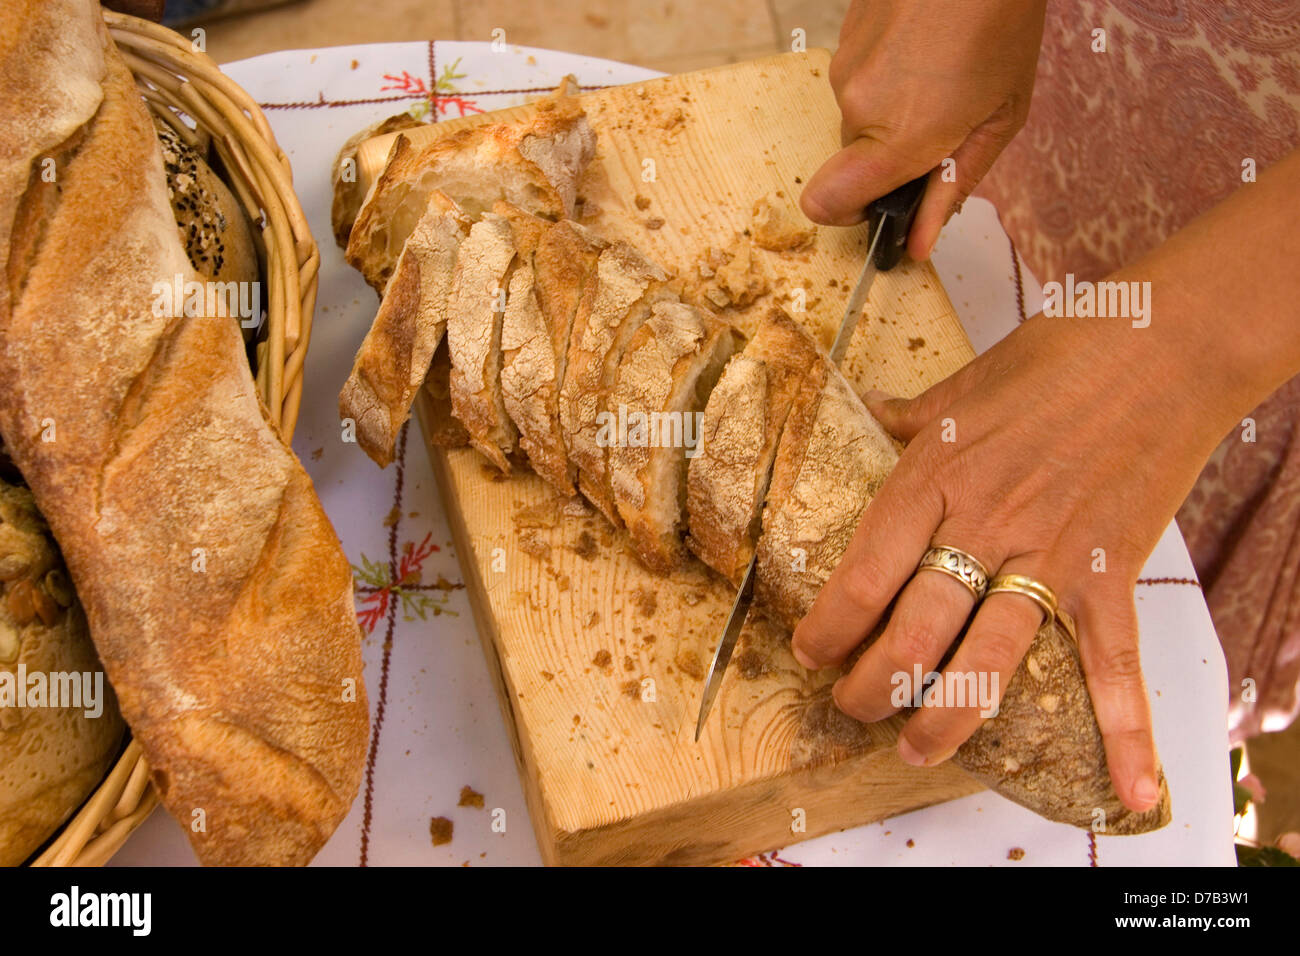 slicing a whole wheat home made bread - Stock Image